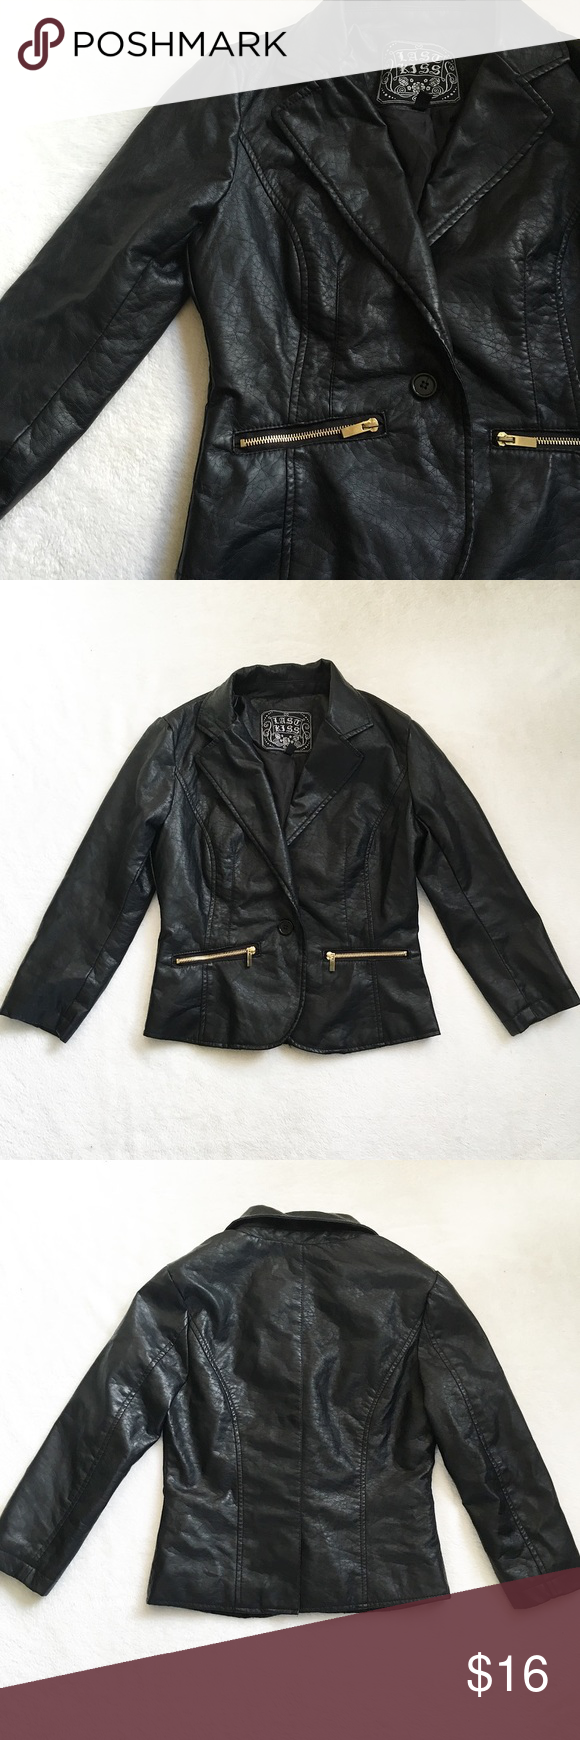 Black Vegan Leather Faux Leather Jacket Blazer 🌸 Black Vegan Leather Blazer Jacket by Last Kiss  🌸 Faux leather jacket in black with a collar   🌸 Suitable for work or outings   🌸 Buttons in the middle with a single medium sized button   🌸 Has two functional zipper pockets in the front. Zipper is exposed and the hardware is gold colored. Zipper pulls are lightly tarnished  🌸 There some wearing on the faux leather, this is not noticeable when worn as it is hidden by the button (shown in…